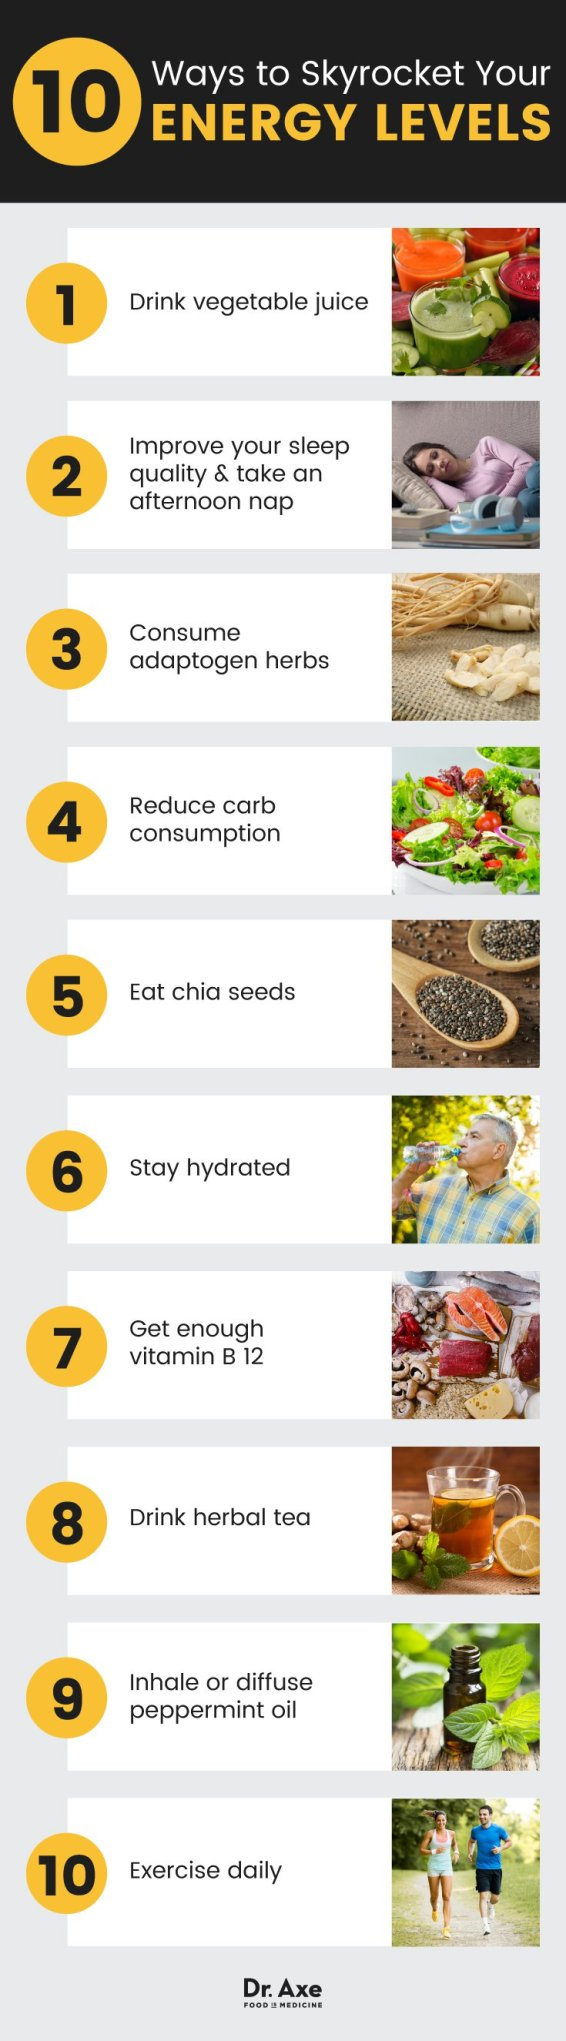 10 Ways to Skyrocket your Energy Levels